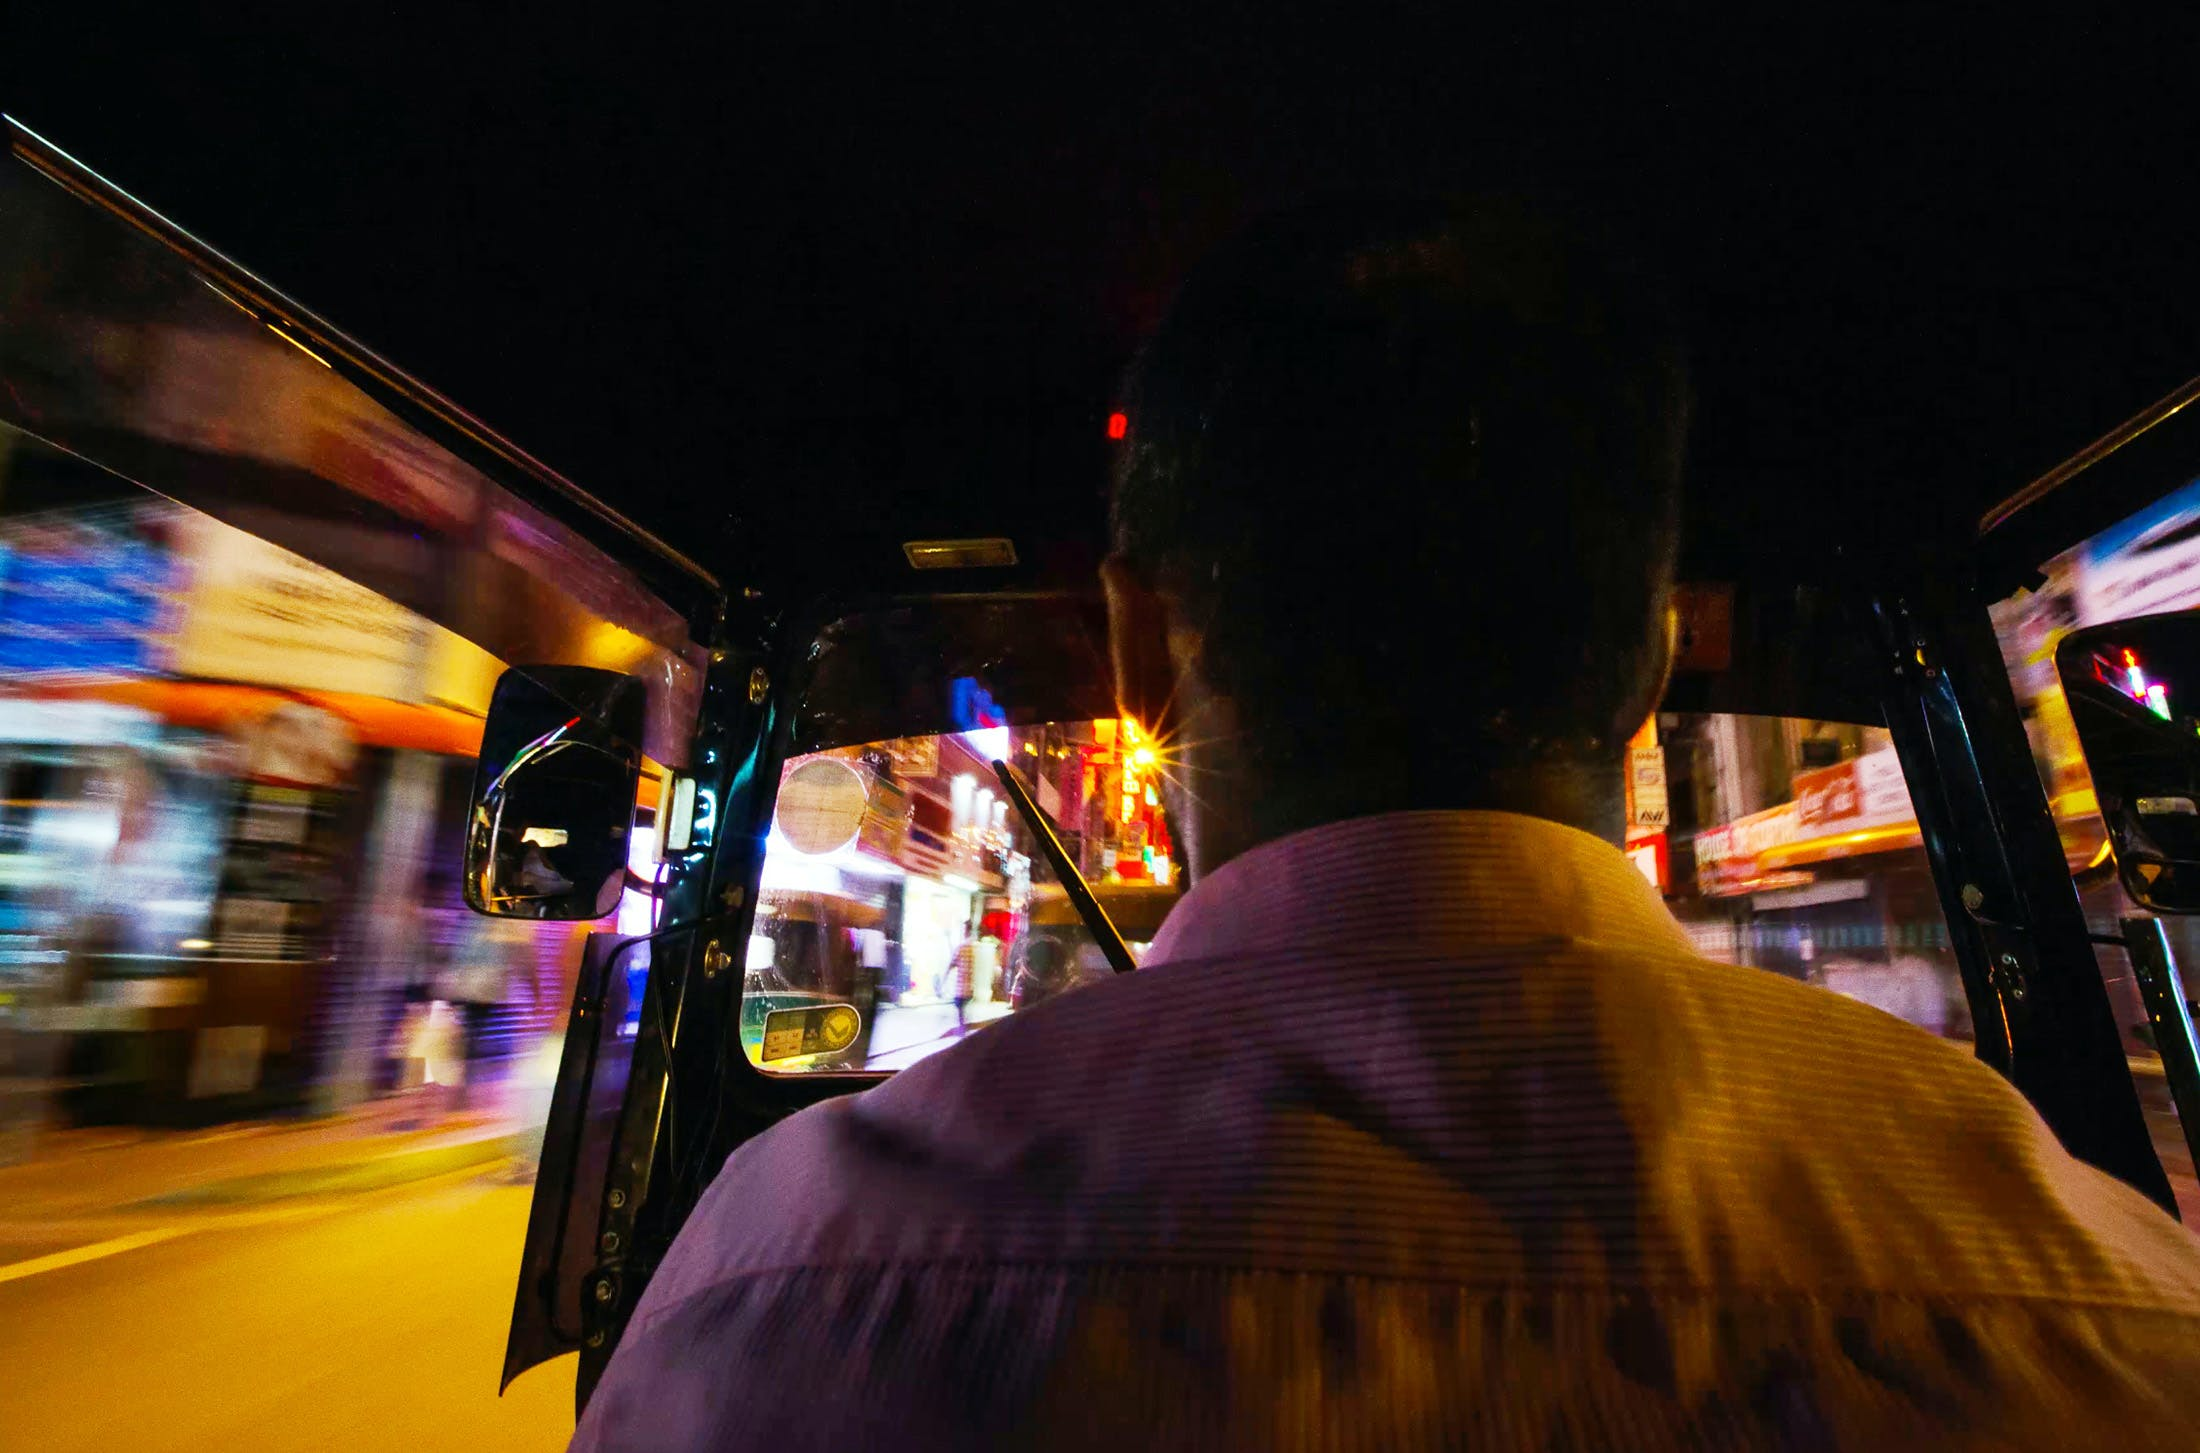 tuk-tuk ride in Colombo, Sri Lanka